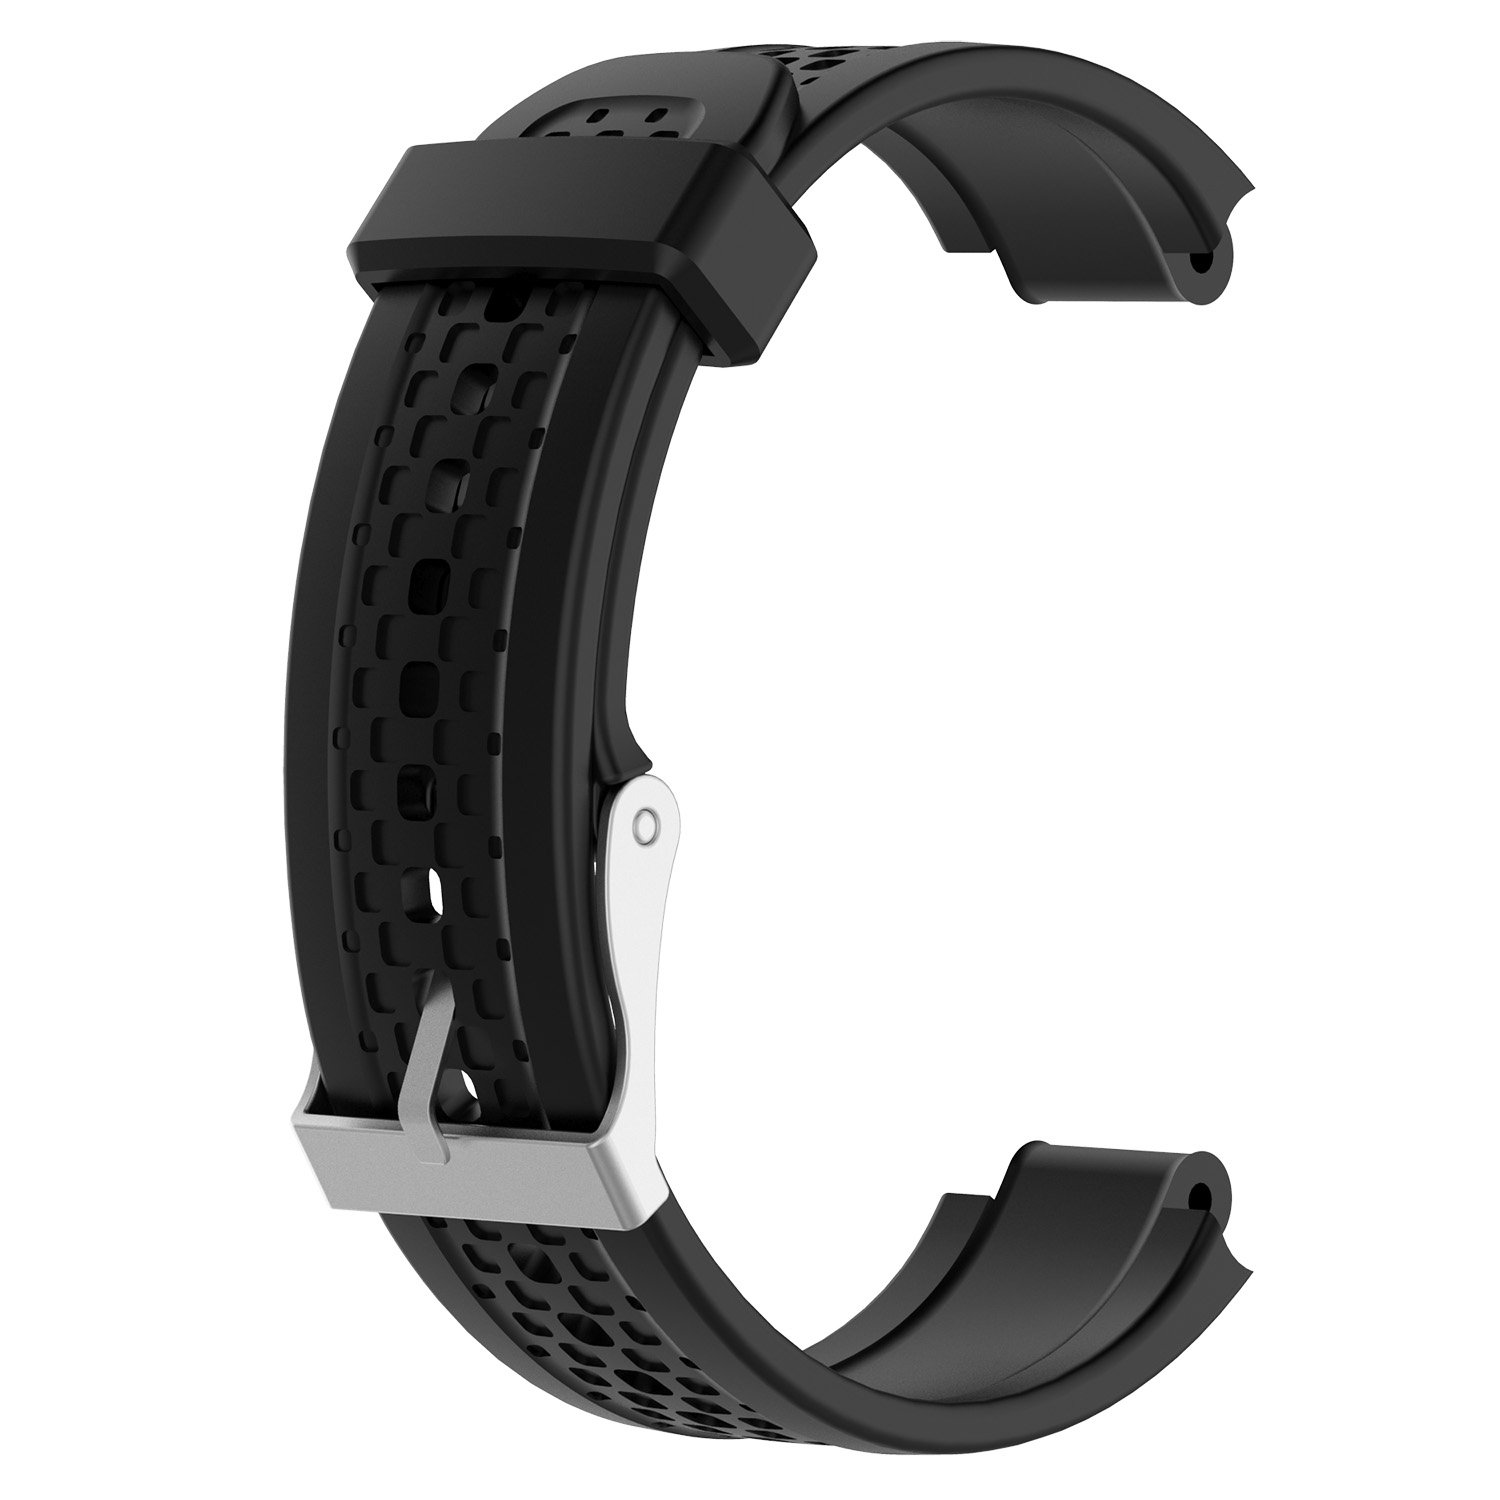 Replacement band for Garmin Forerunner 25 GPS Running Watch Wristband Fitness Tracker for Smartphone(Female strap) (Black)